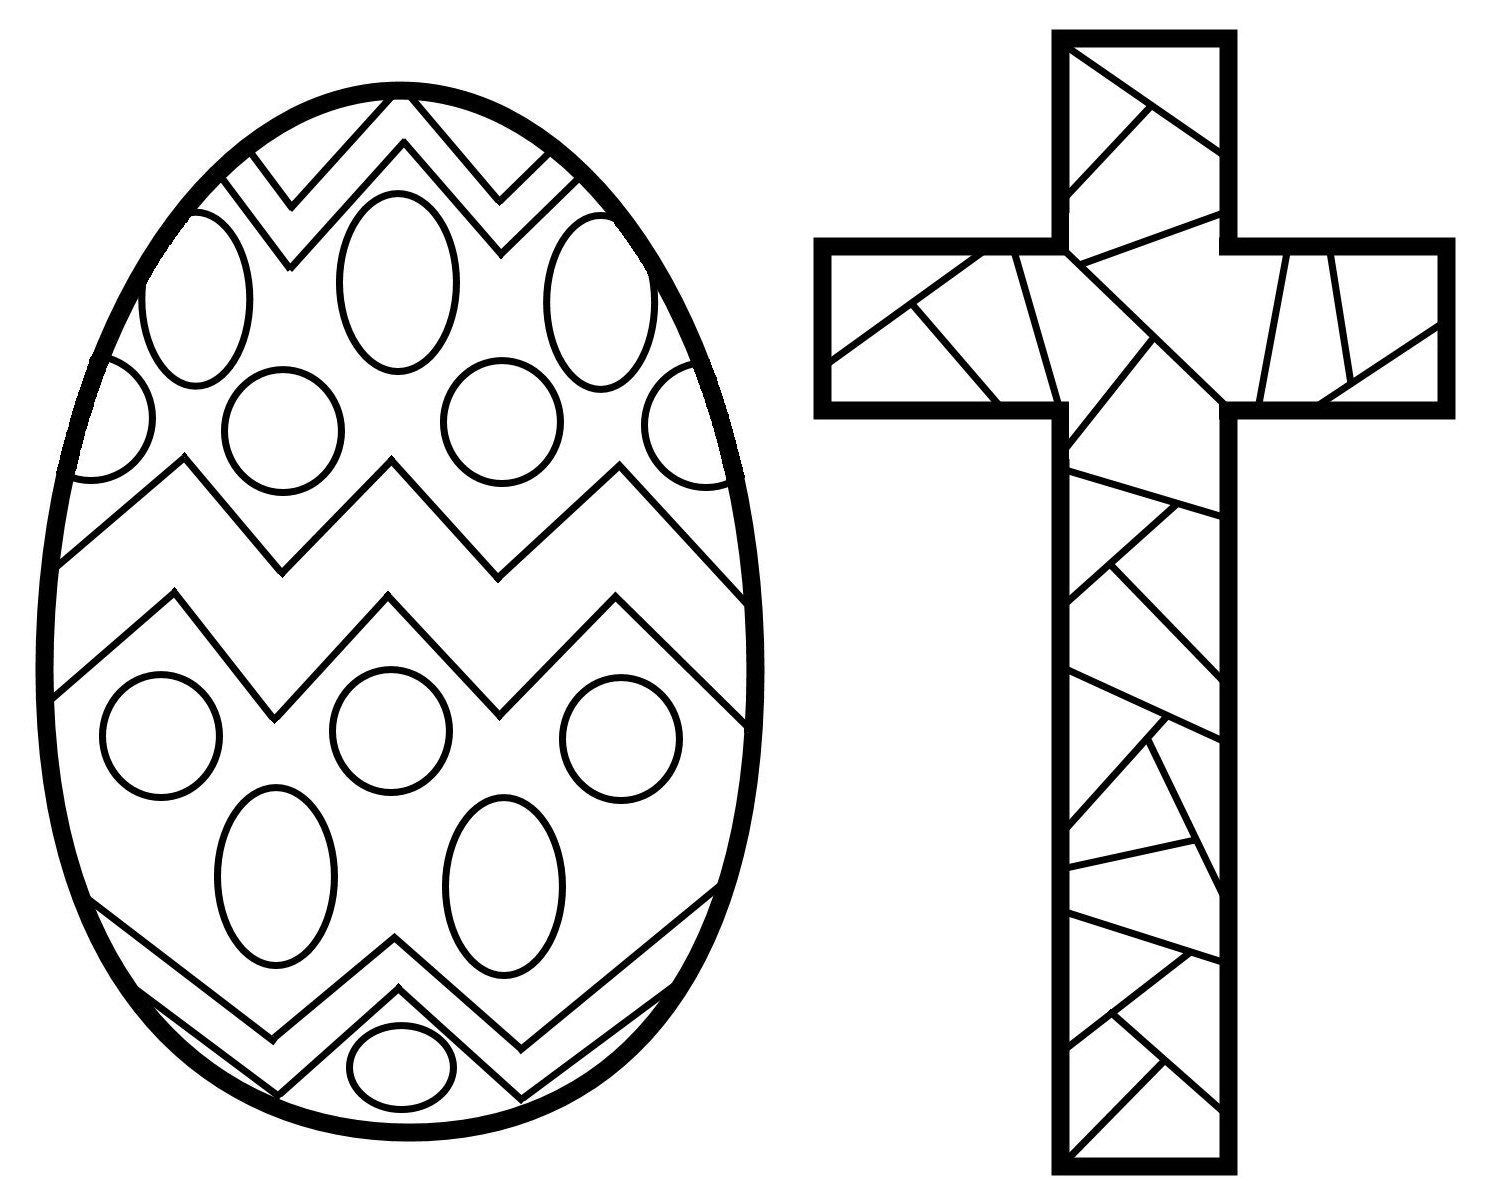 1500x1200 Stunning Easter Cross Coloring Pages Printable For Kids Pics